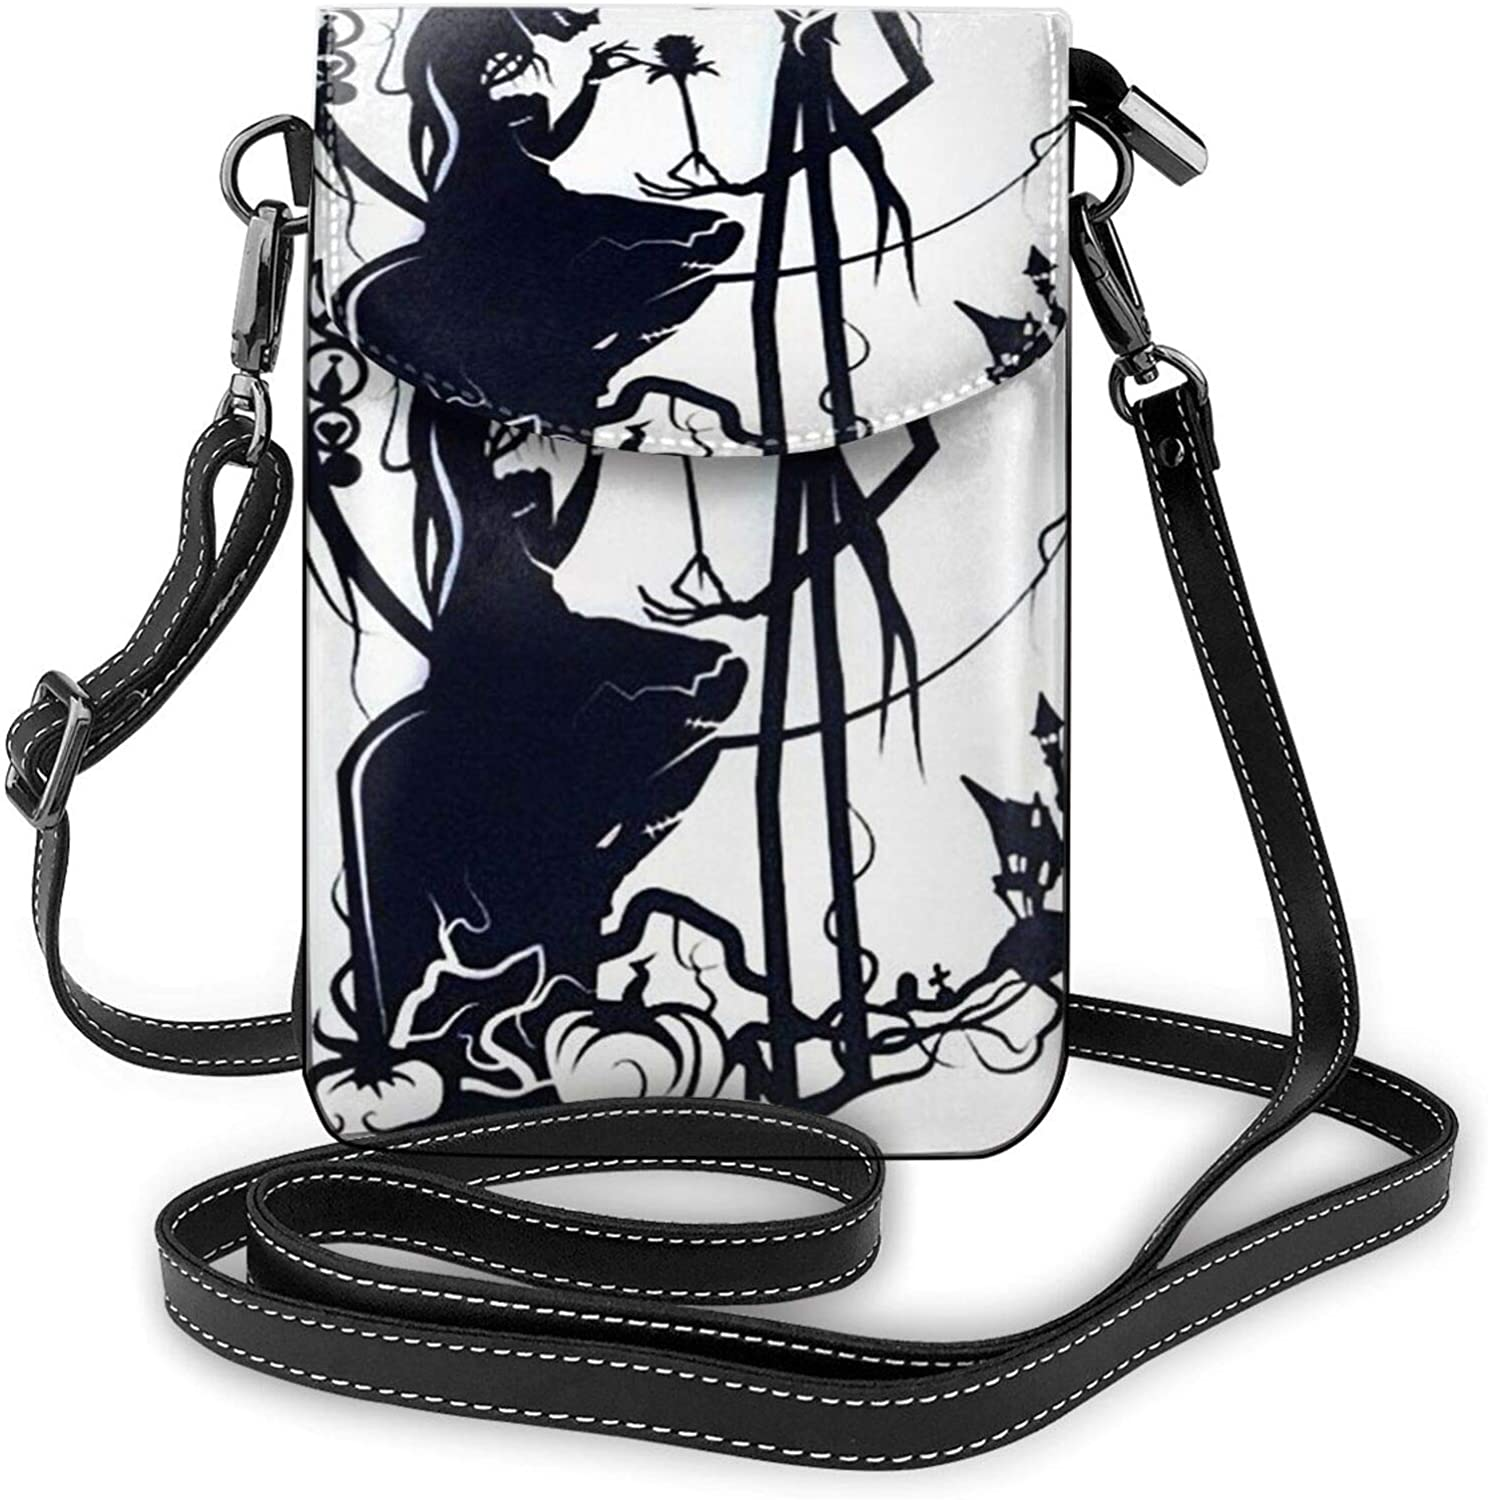 Kuritian Small Crossbody Bags Cell Phone Pursejack And Sally Print With Credit Card Slots